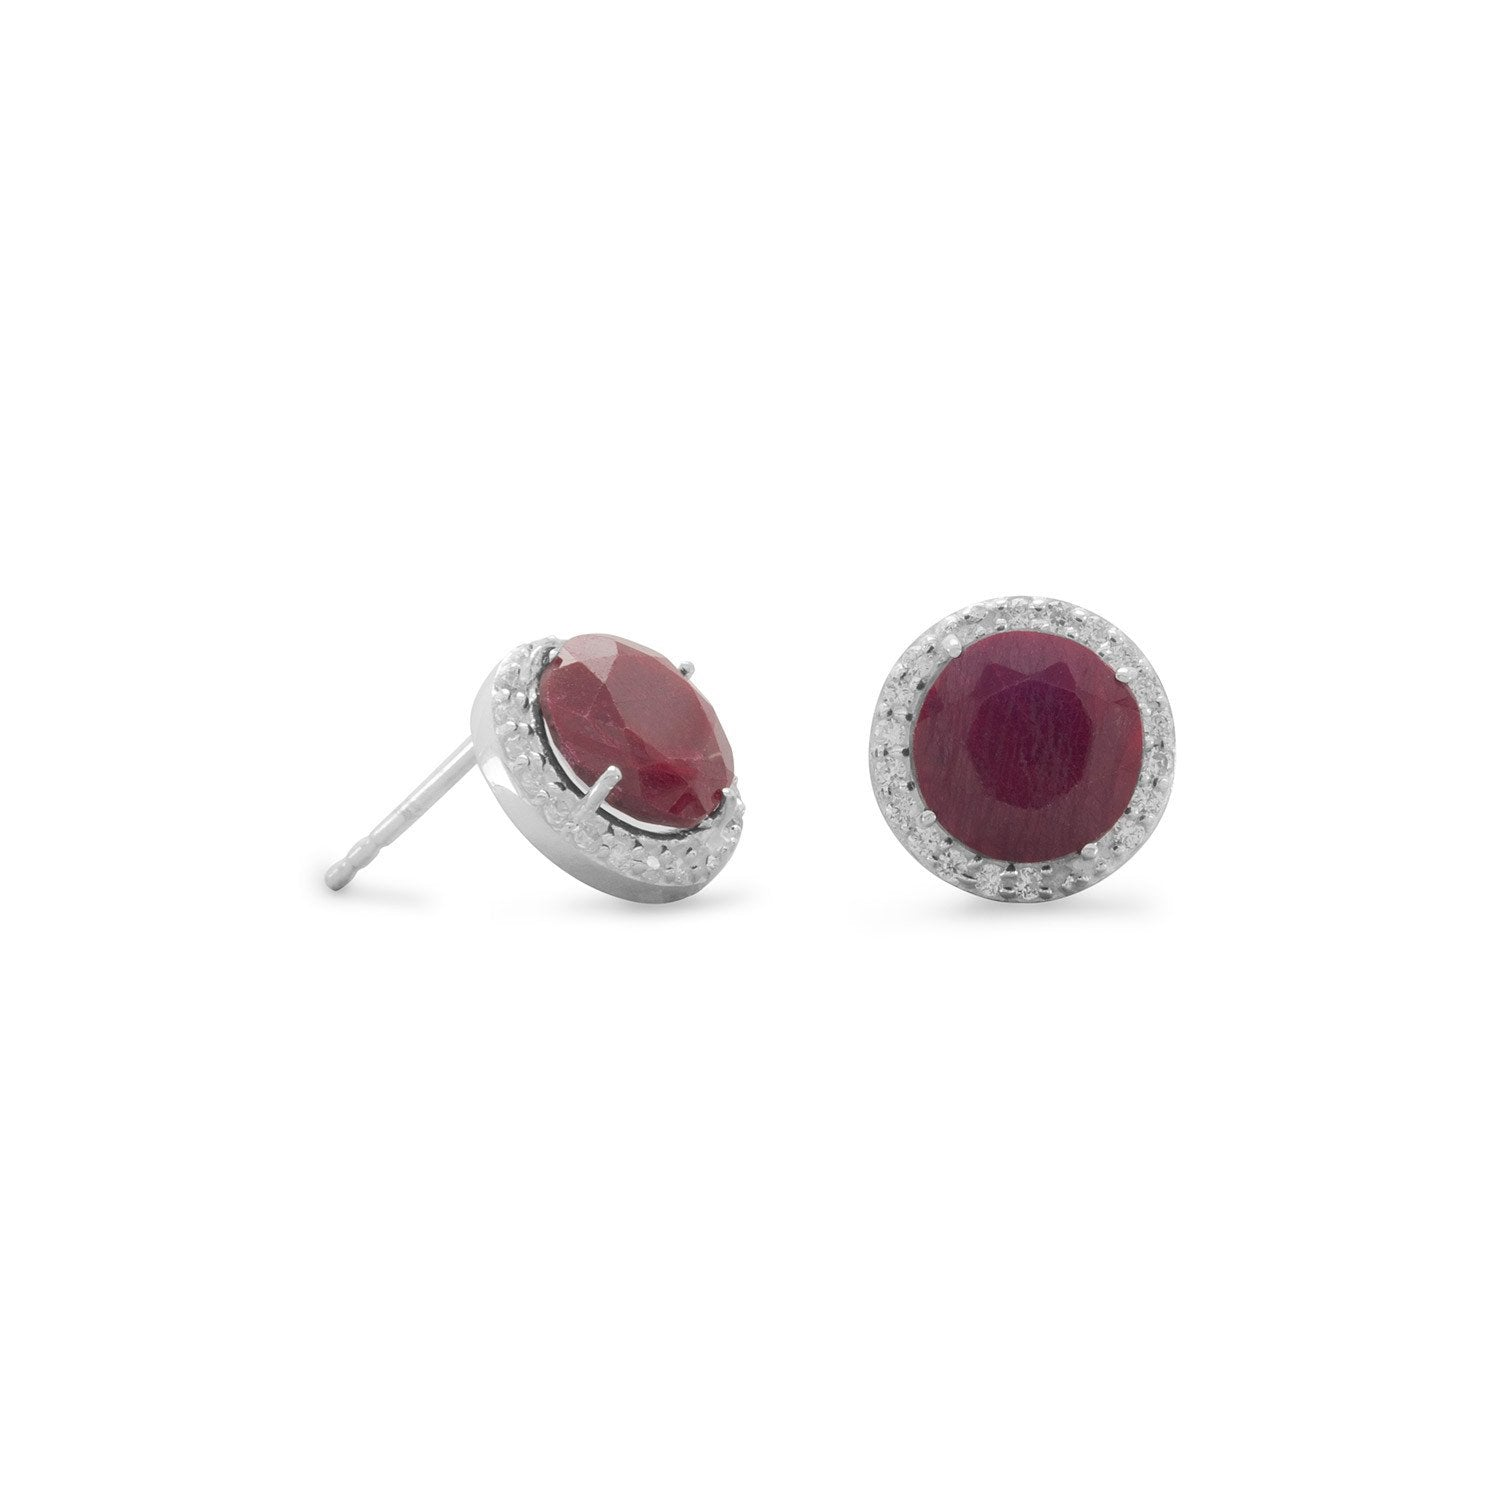 Corundum Stud Earrings with CZ Edge - Rocky Mt. Discount Outlet